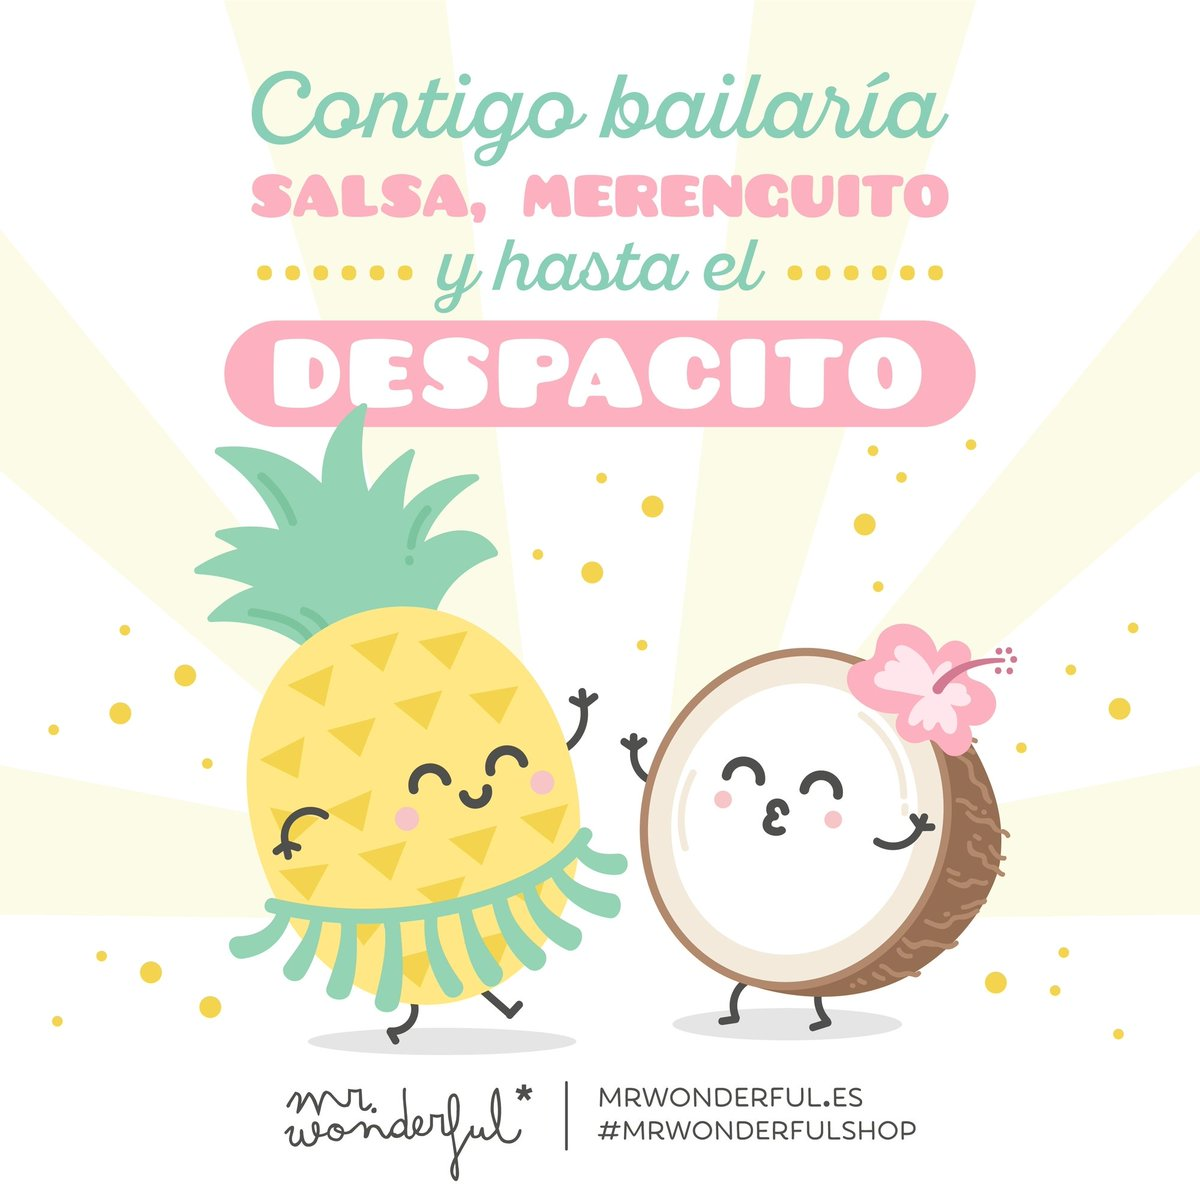 Media tweets by mr wonderful mrwonderful twitter for Frases de mister wonderful